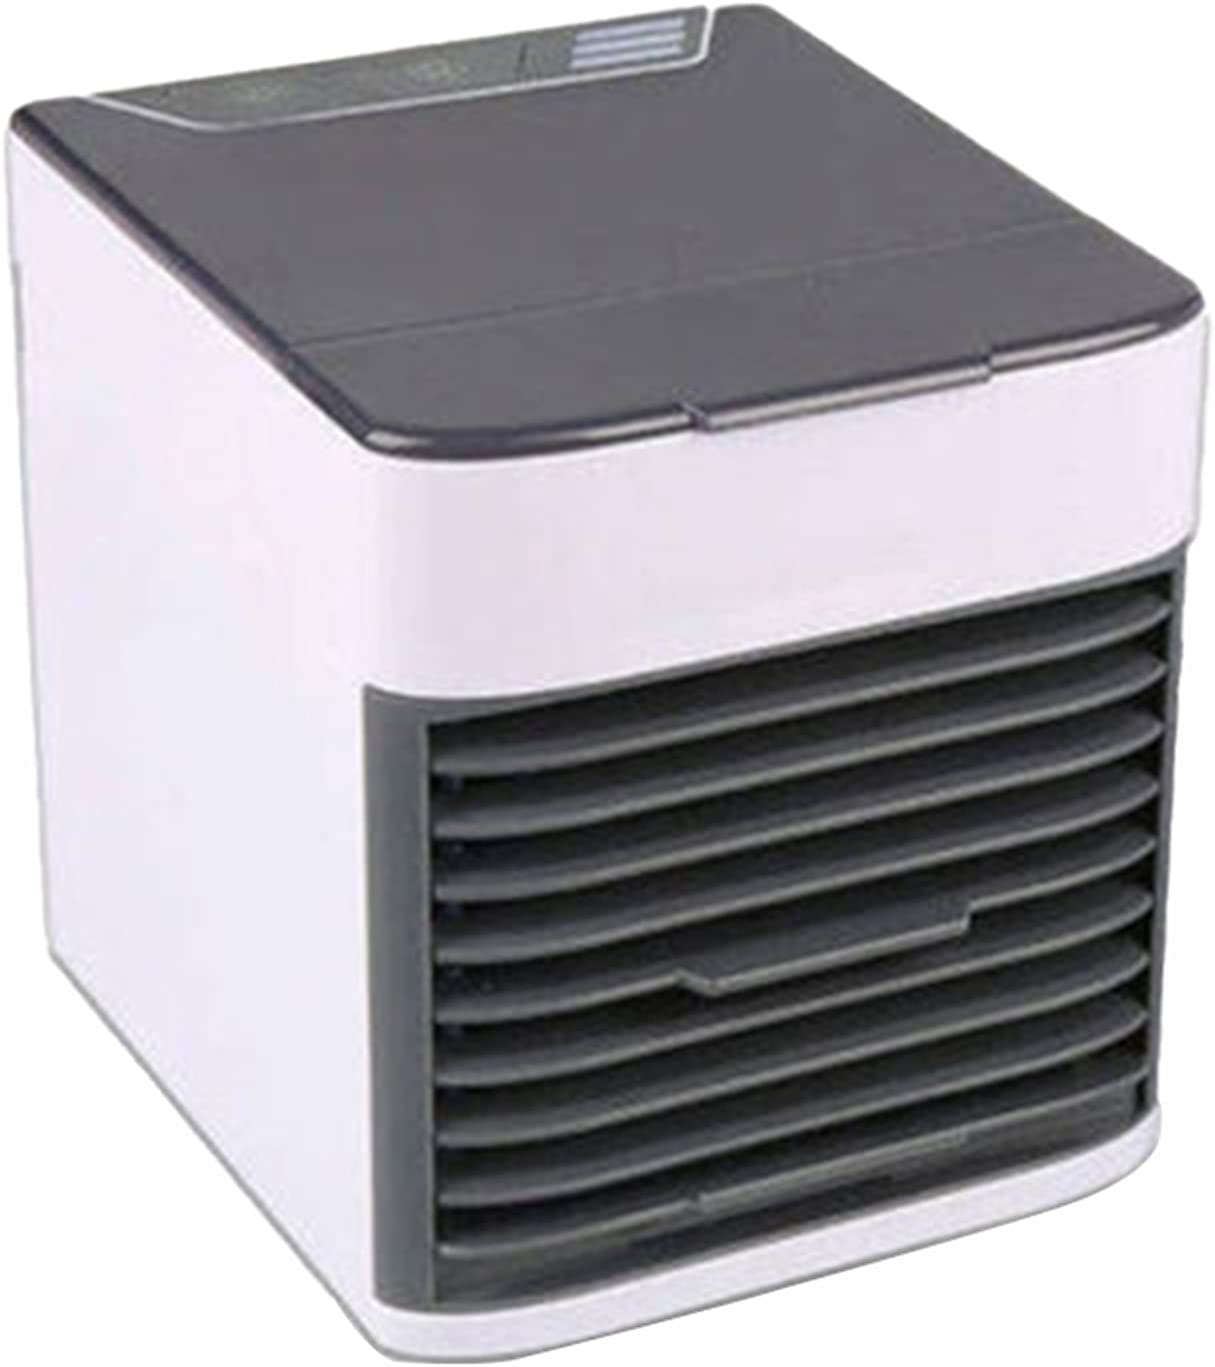 Spring new work one after another JZENZERO Portable Air Conditioner Special price for a limited time Fan USB Rechargea Fast Cooling